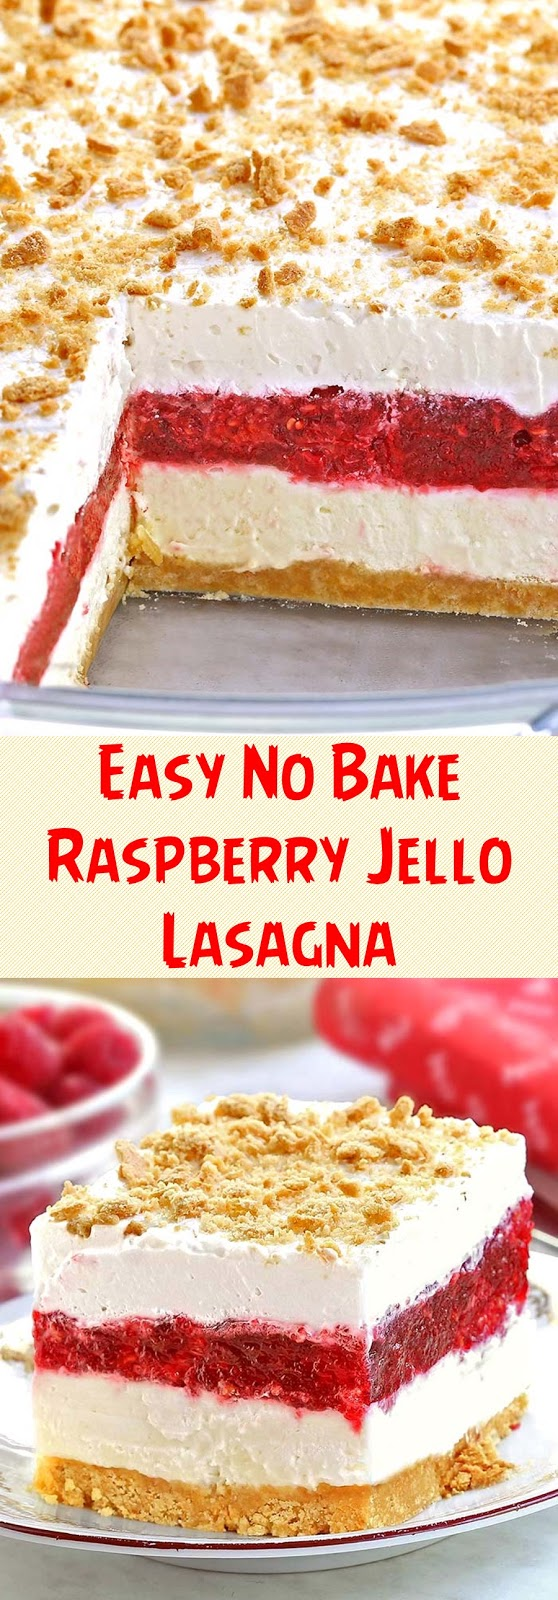 Easy No Bake Raspberry Jello Lasagna